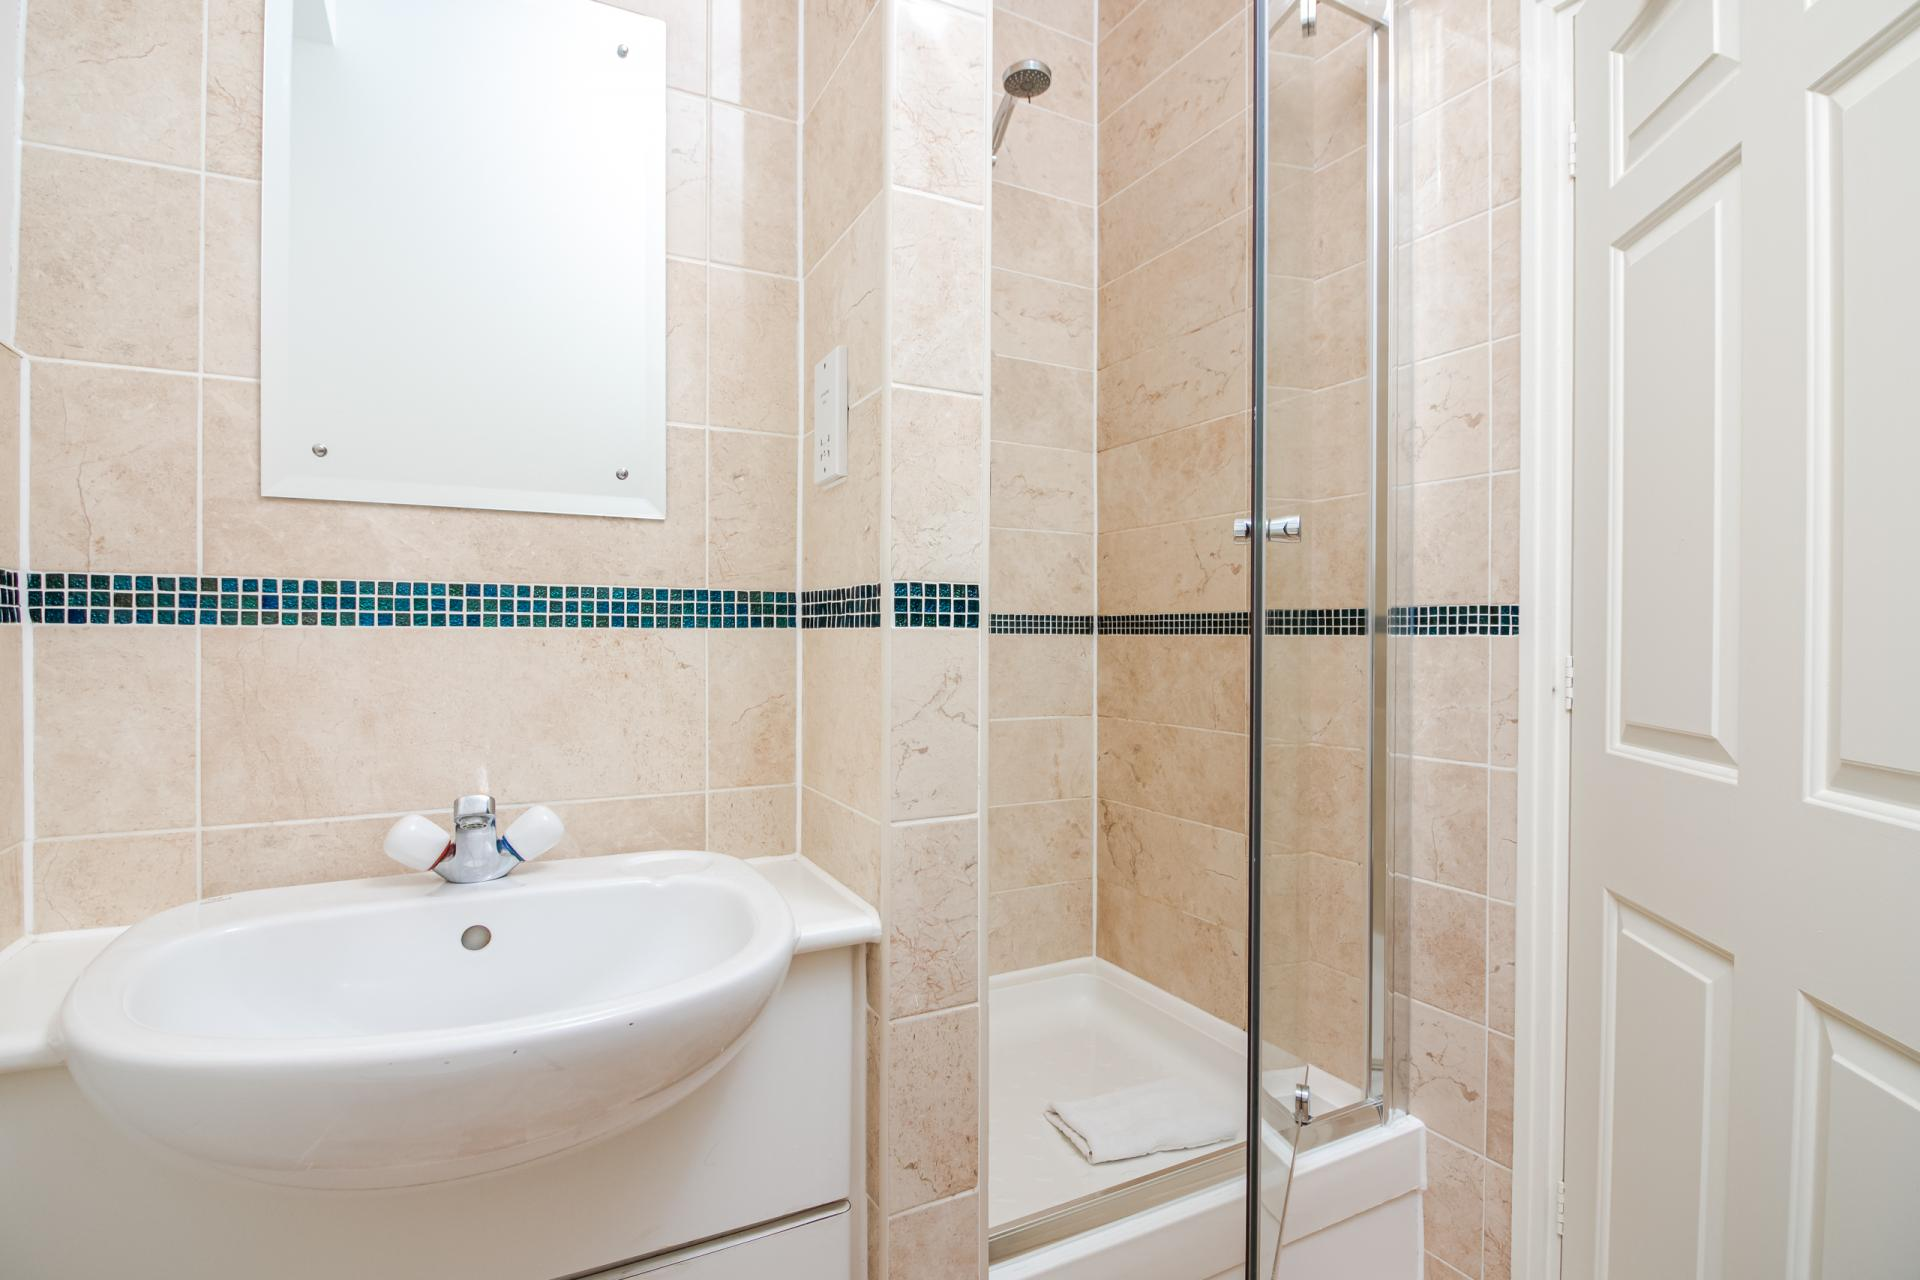 Bathroom at Priory House Apartments, City, London - Citybase Apartments